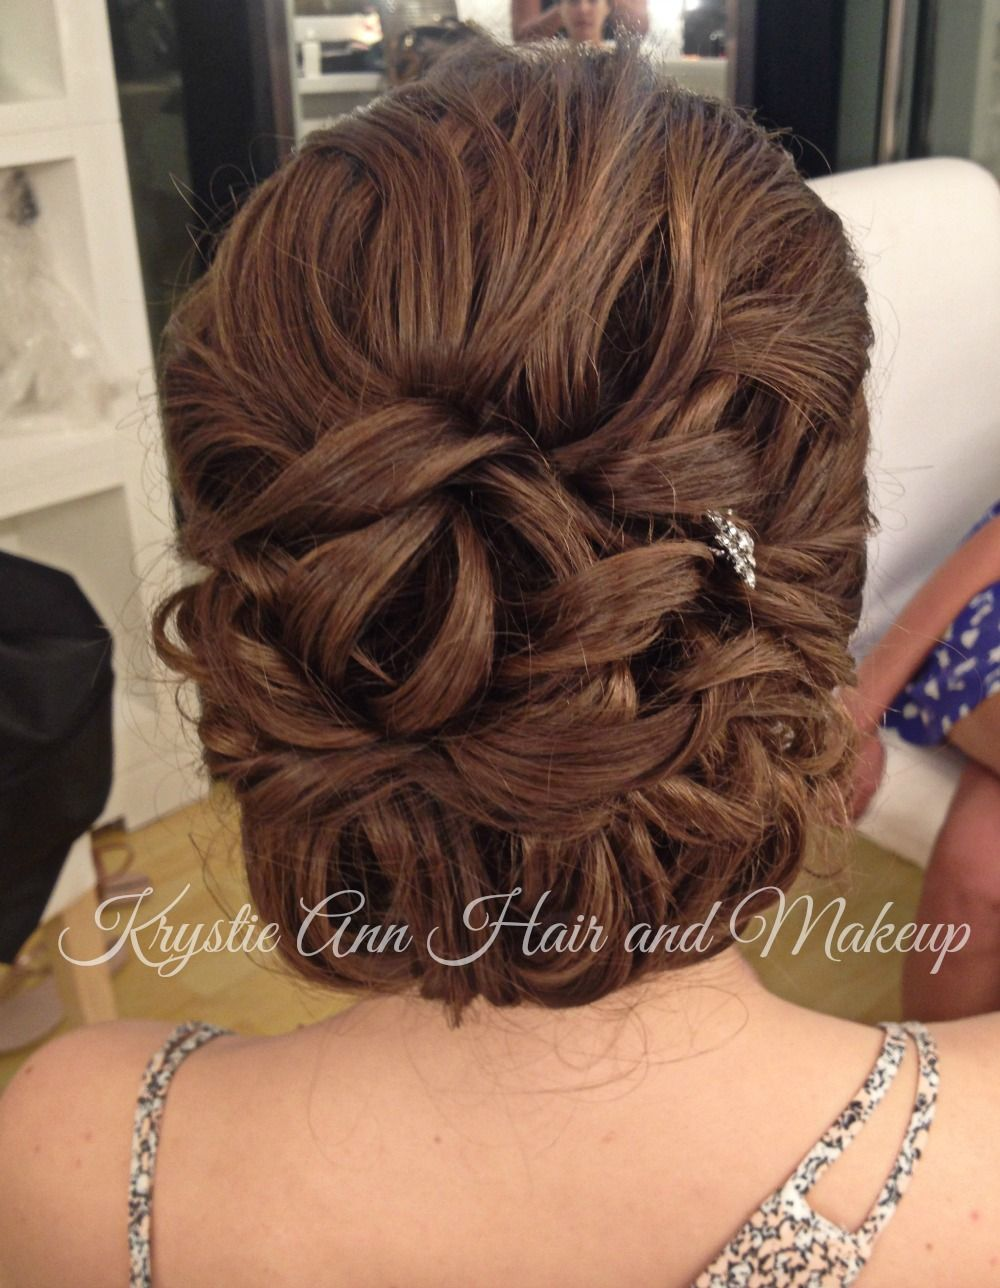 Best Virtual Hairstyle Software Hair Styles Brunette Updo Wedding Hair Inspiration